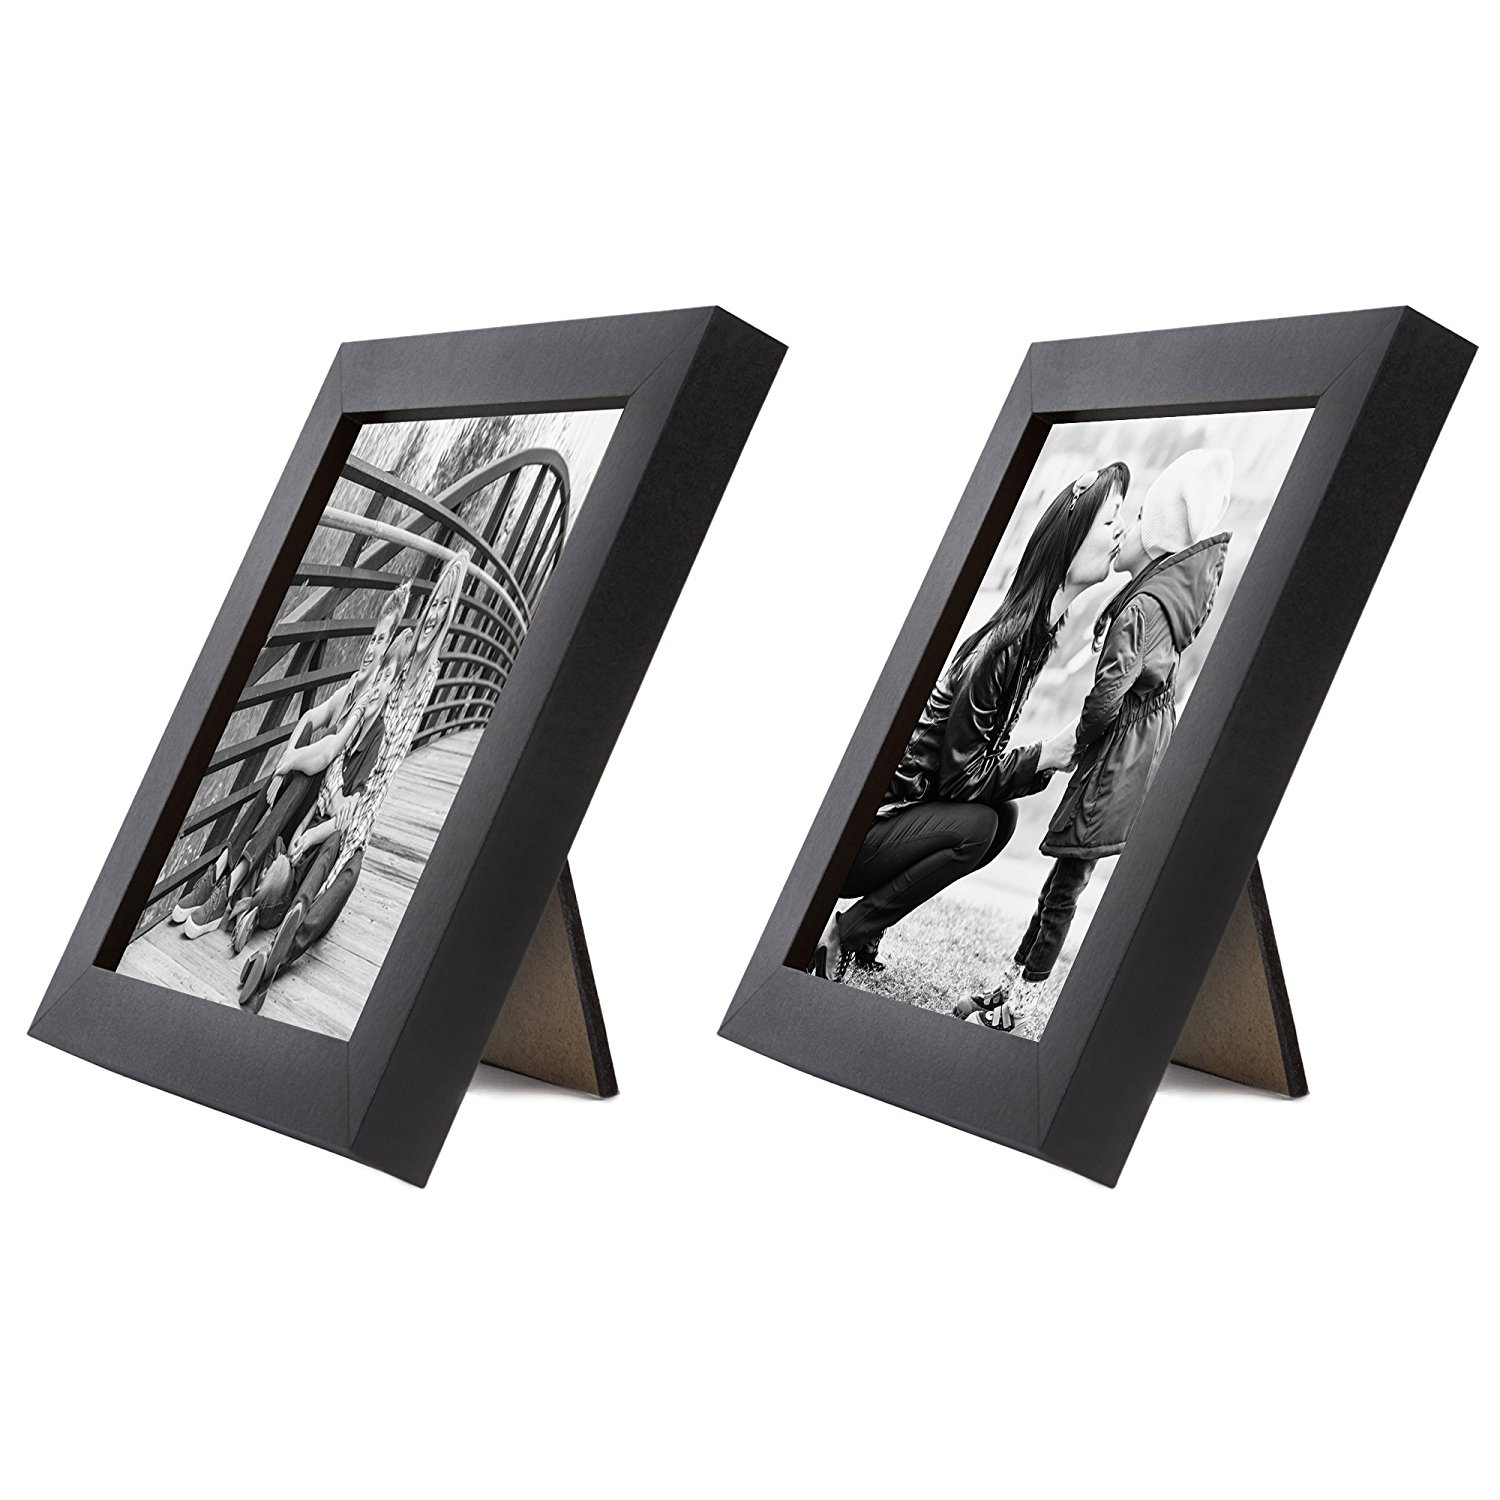 Buy Set of Two Tabletop Frames Made to Display Pictures Sized 4x4 ...